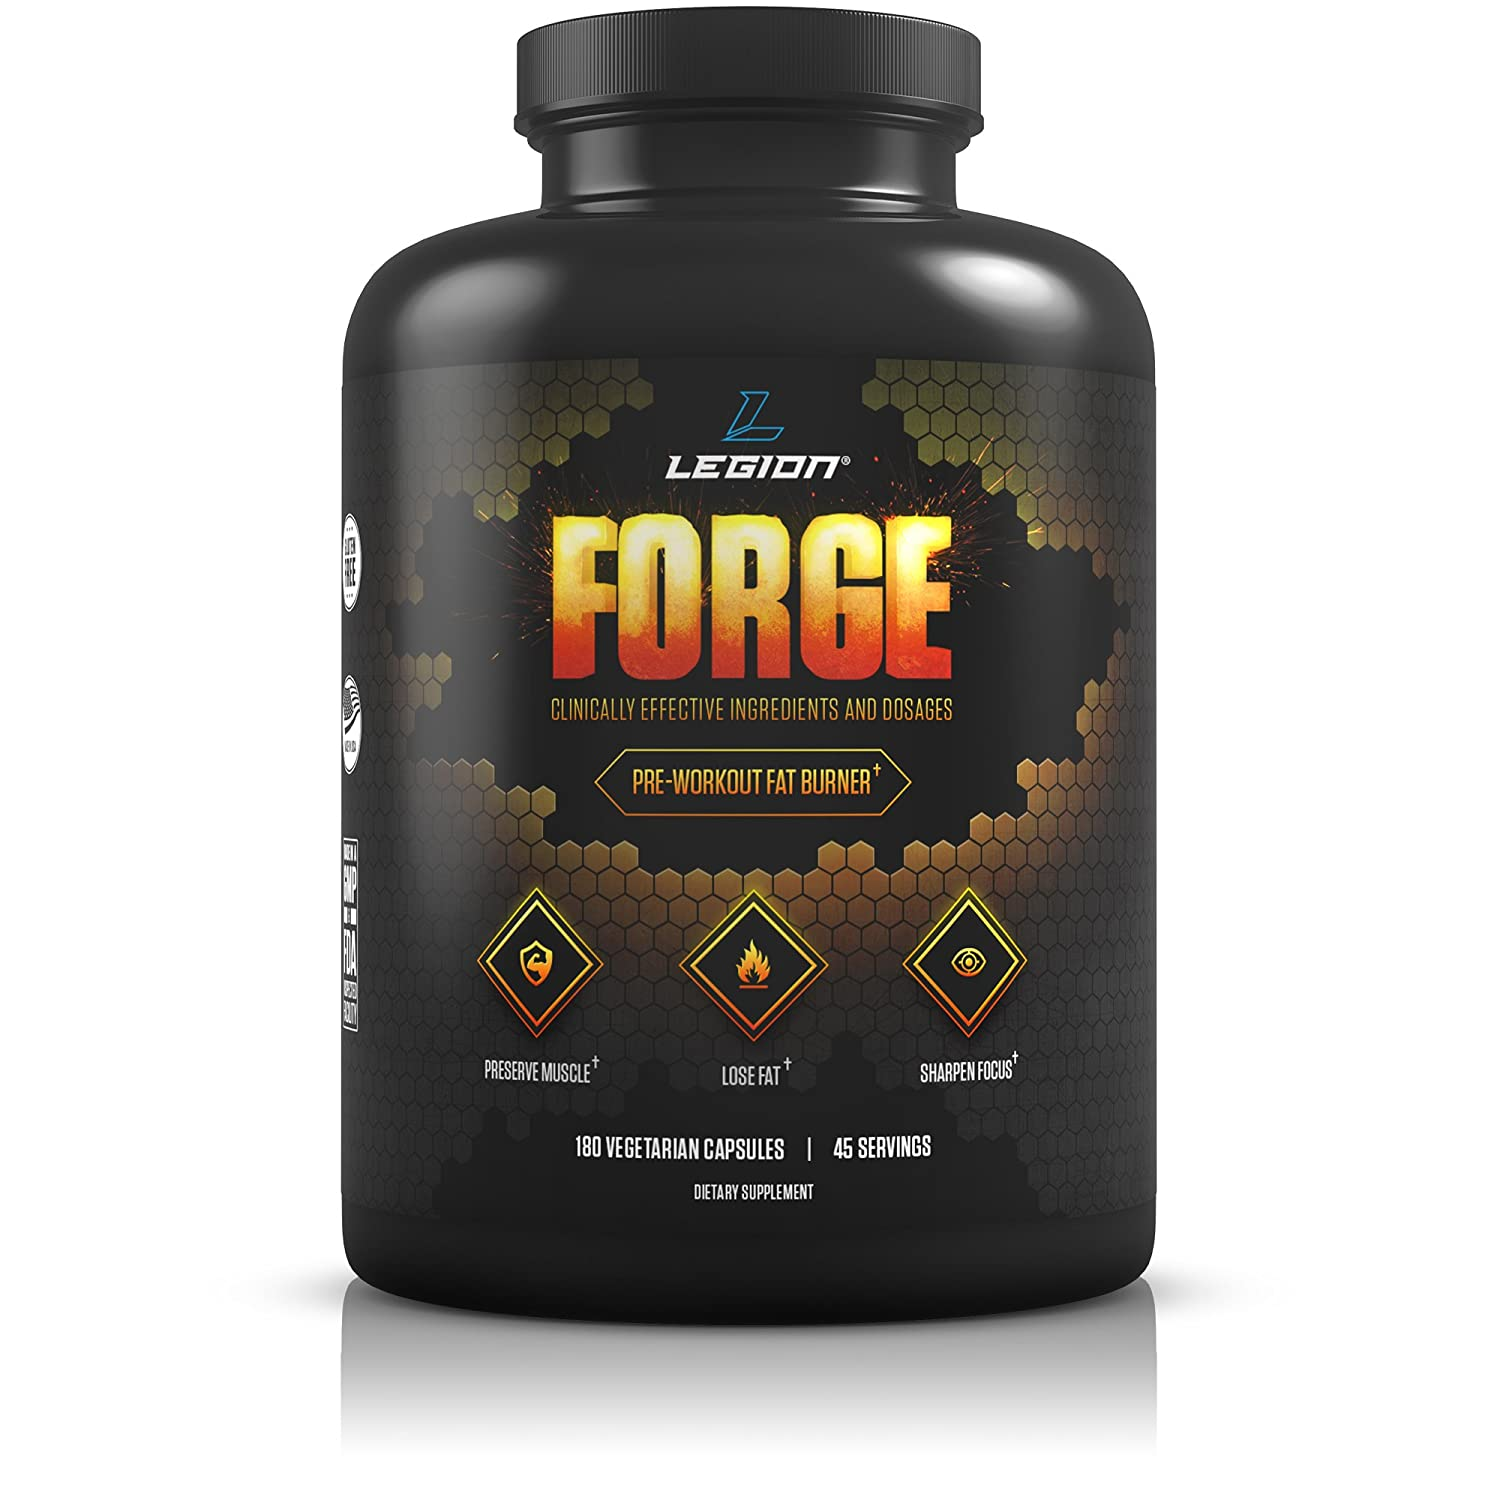 Legion Forge Belly Fat Burner for Men Women – Lose Your Love Handles, Get a Flat Stomach and Trimmer Waist Fast. Helps with Butt Leg Fat Too with Yohimbe, HMB, Choline. All Natural, 45 Servings.